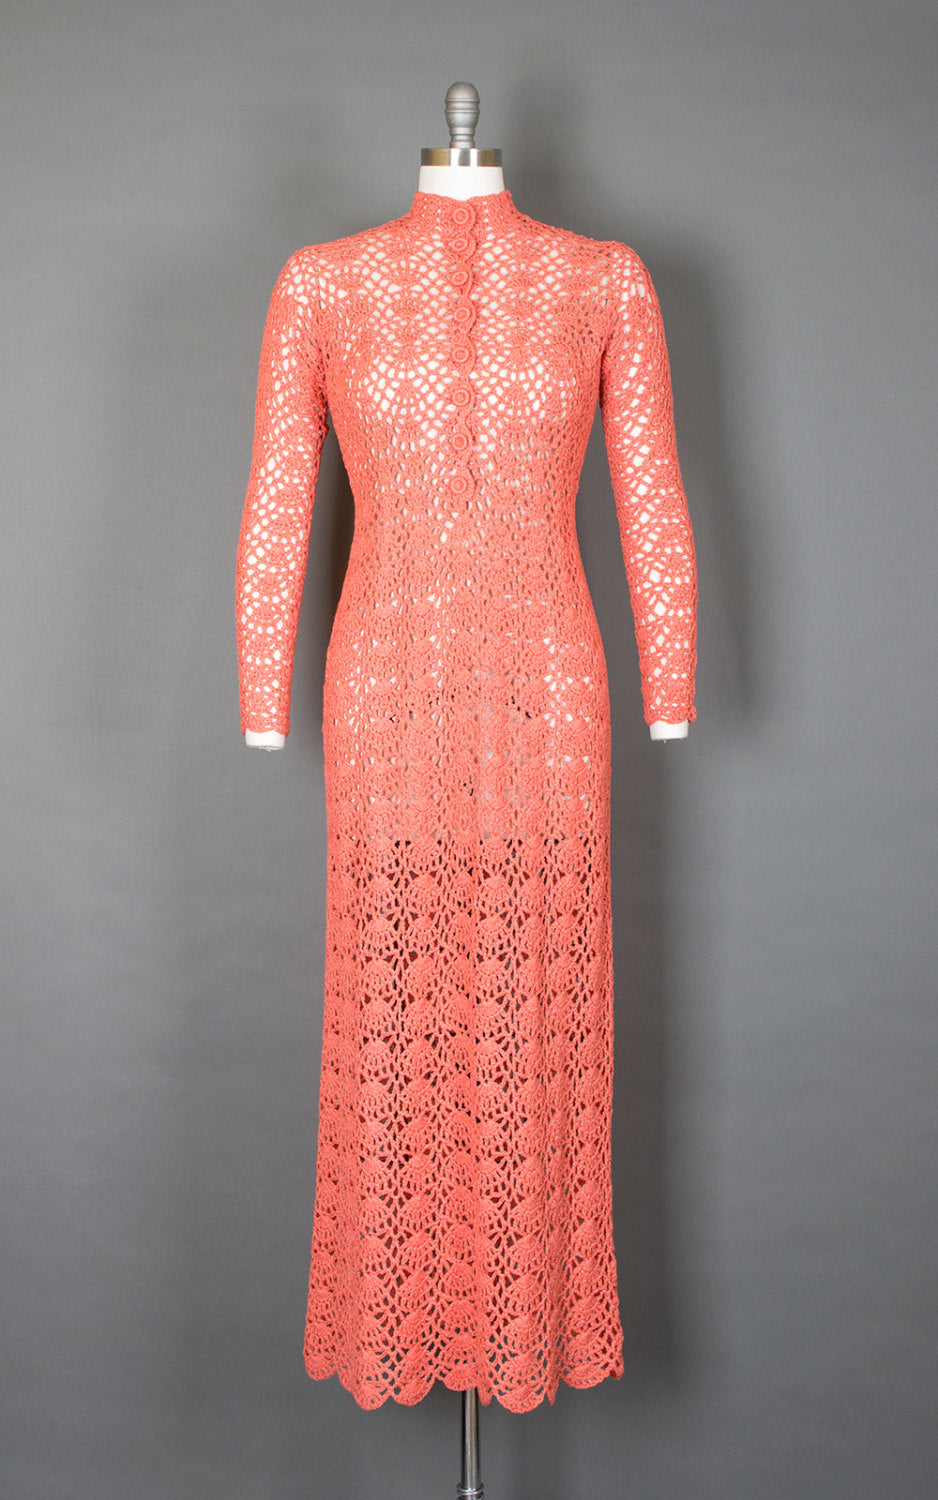 Vintage 1970s Sweater Dress | 70s Crochet Peach See Through Sheer Boho Maxi Wedding Dress (small/medium)